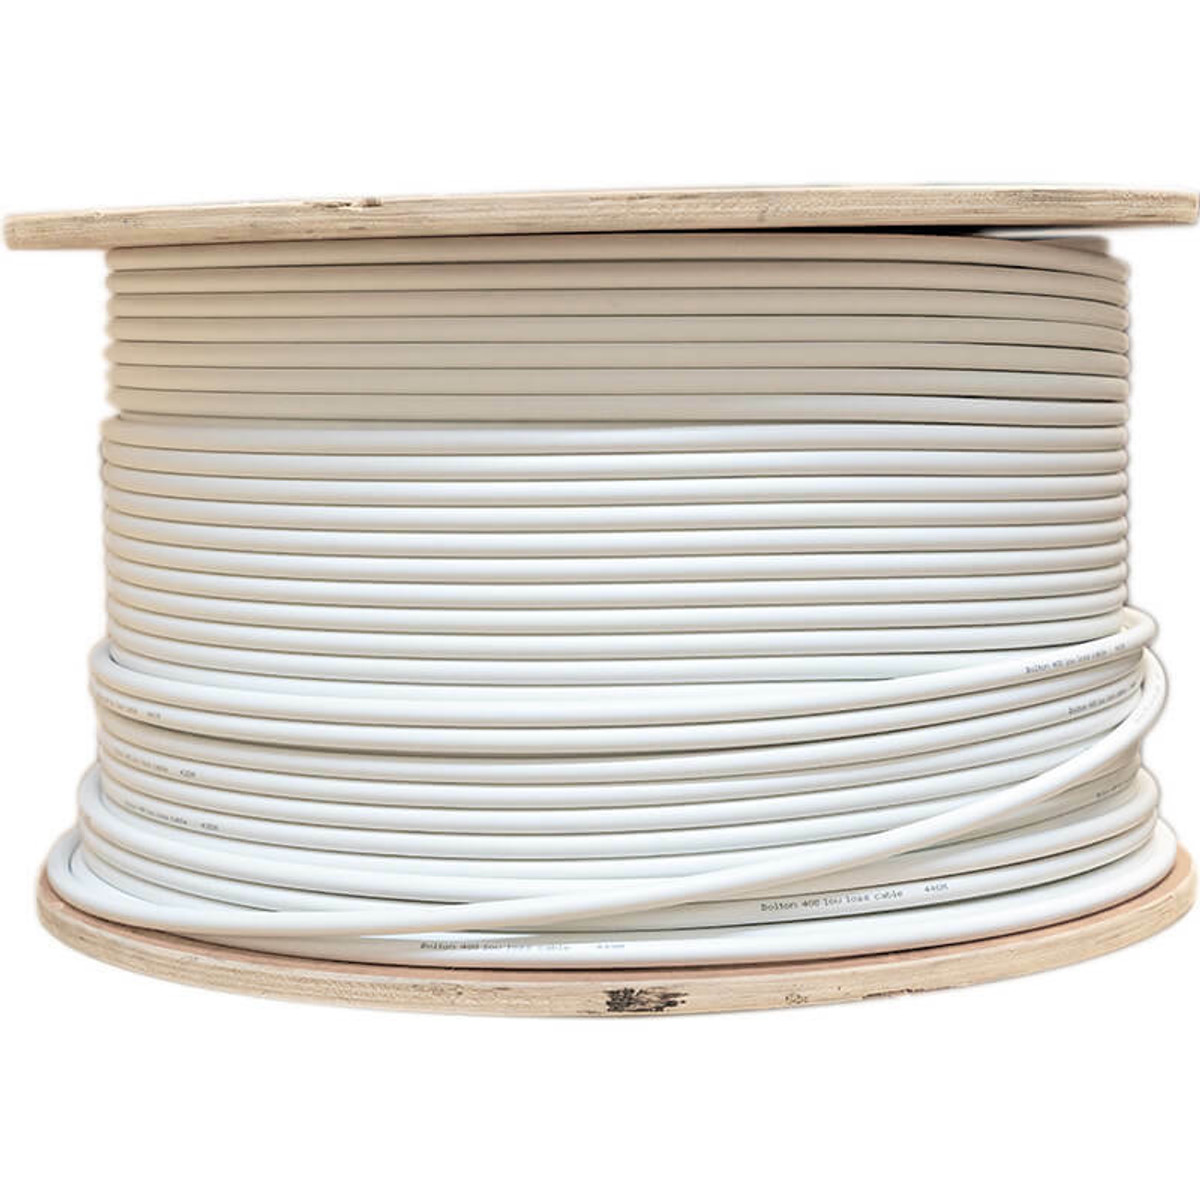 Bolton Technical Bolton400 Ultra Low-Loss White Cable | Priced Per Foot